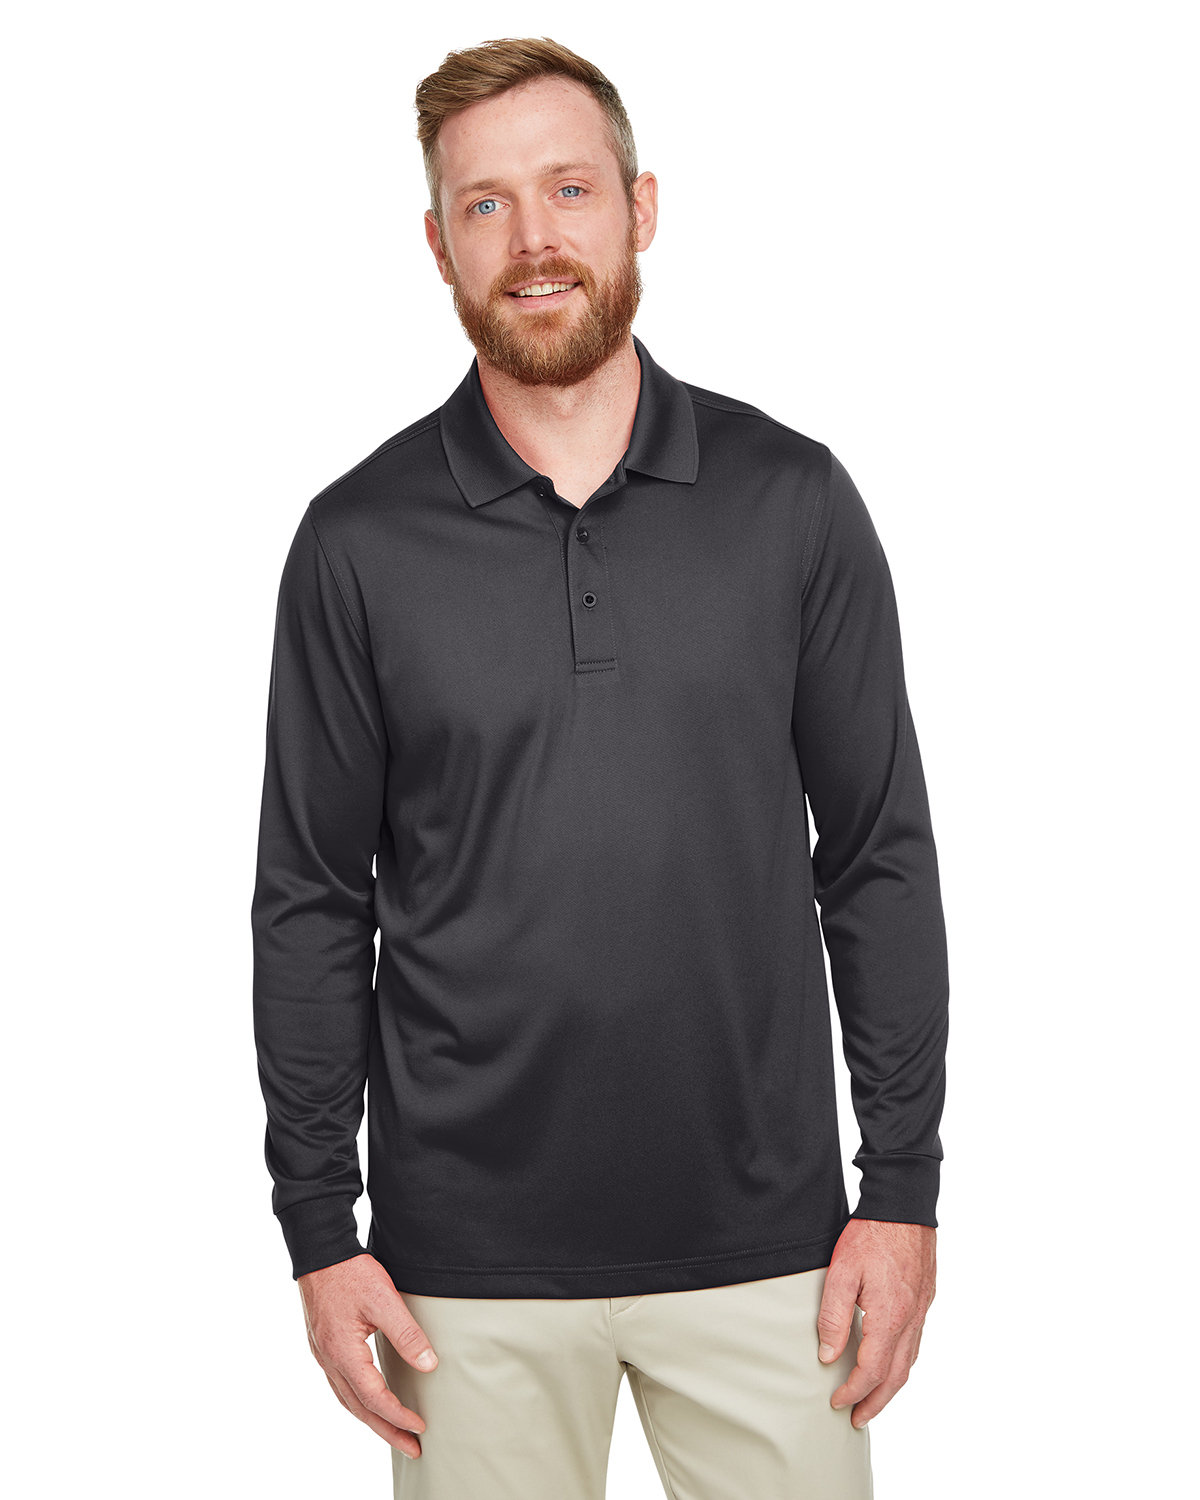 Harriton Men's Tall Advantage Long Sleeve Snag Protection Plus IL Polo DARK CHARCOAL